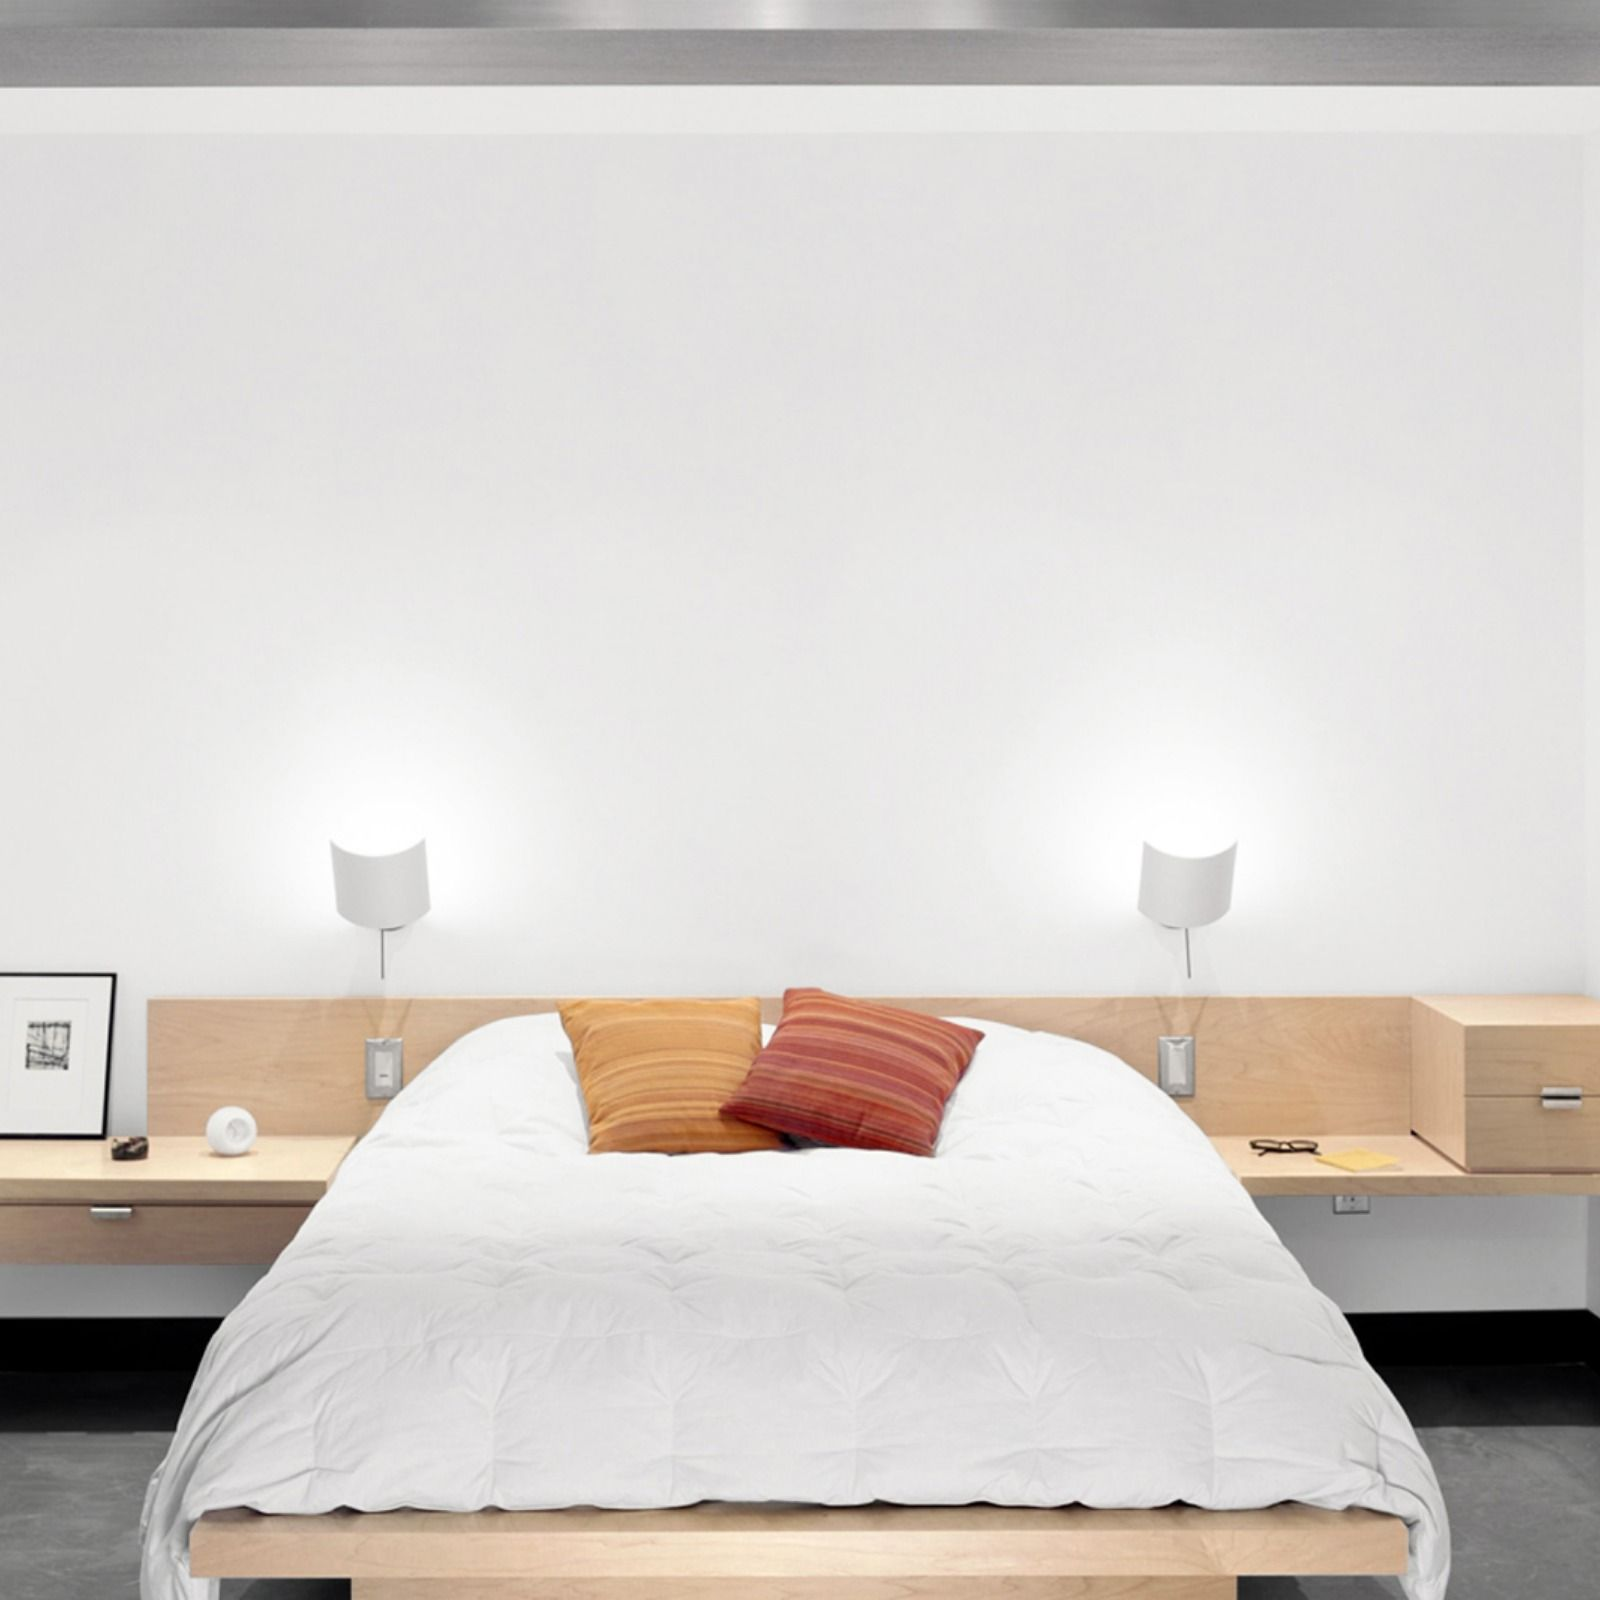 Minimal yet function, this modern builtin bed with